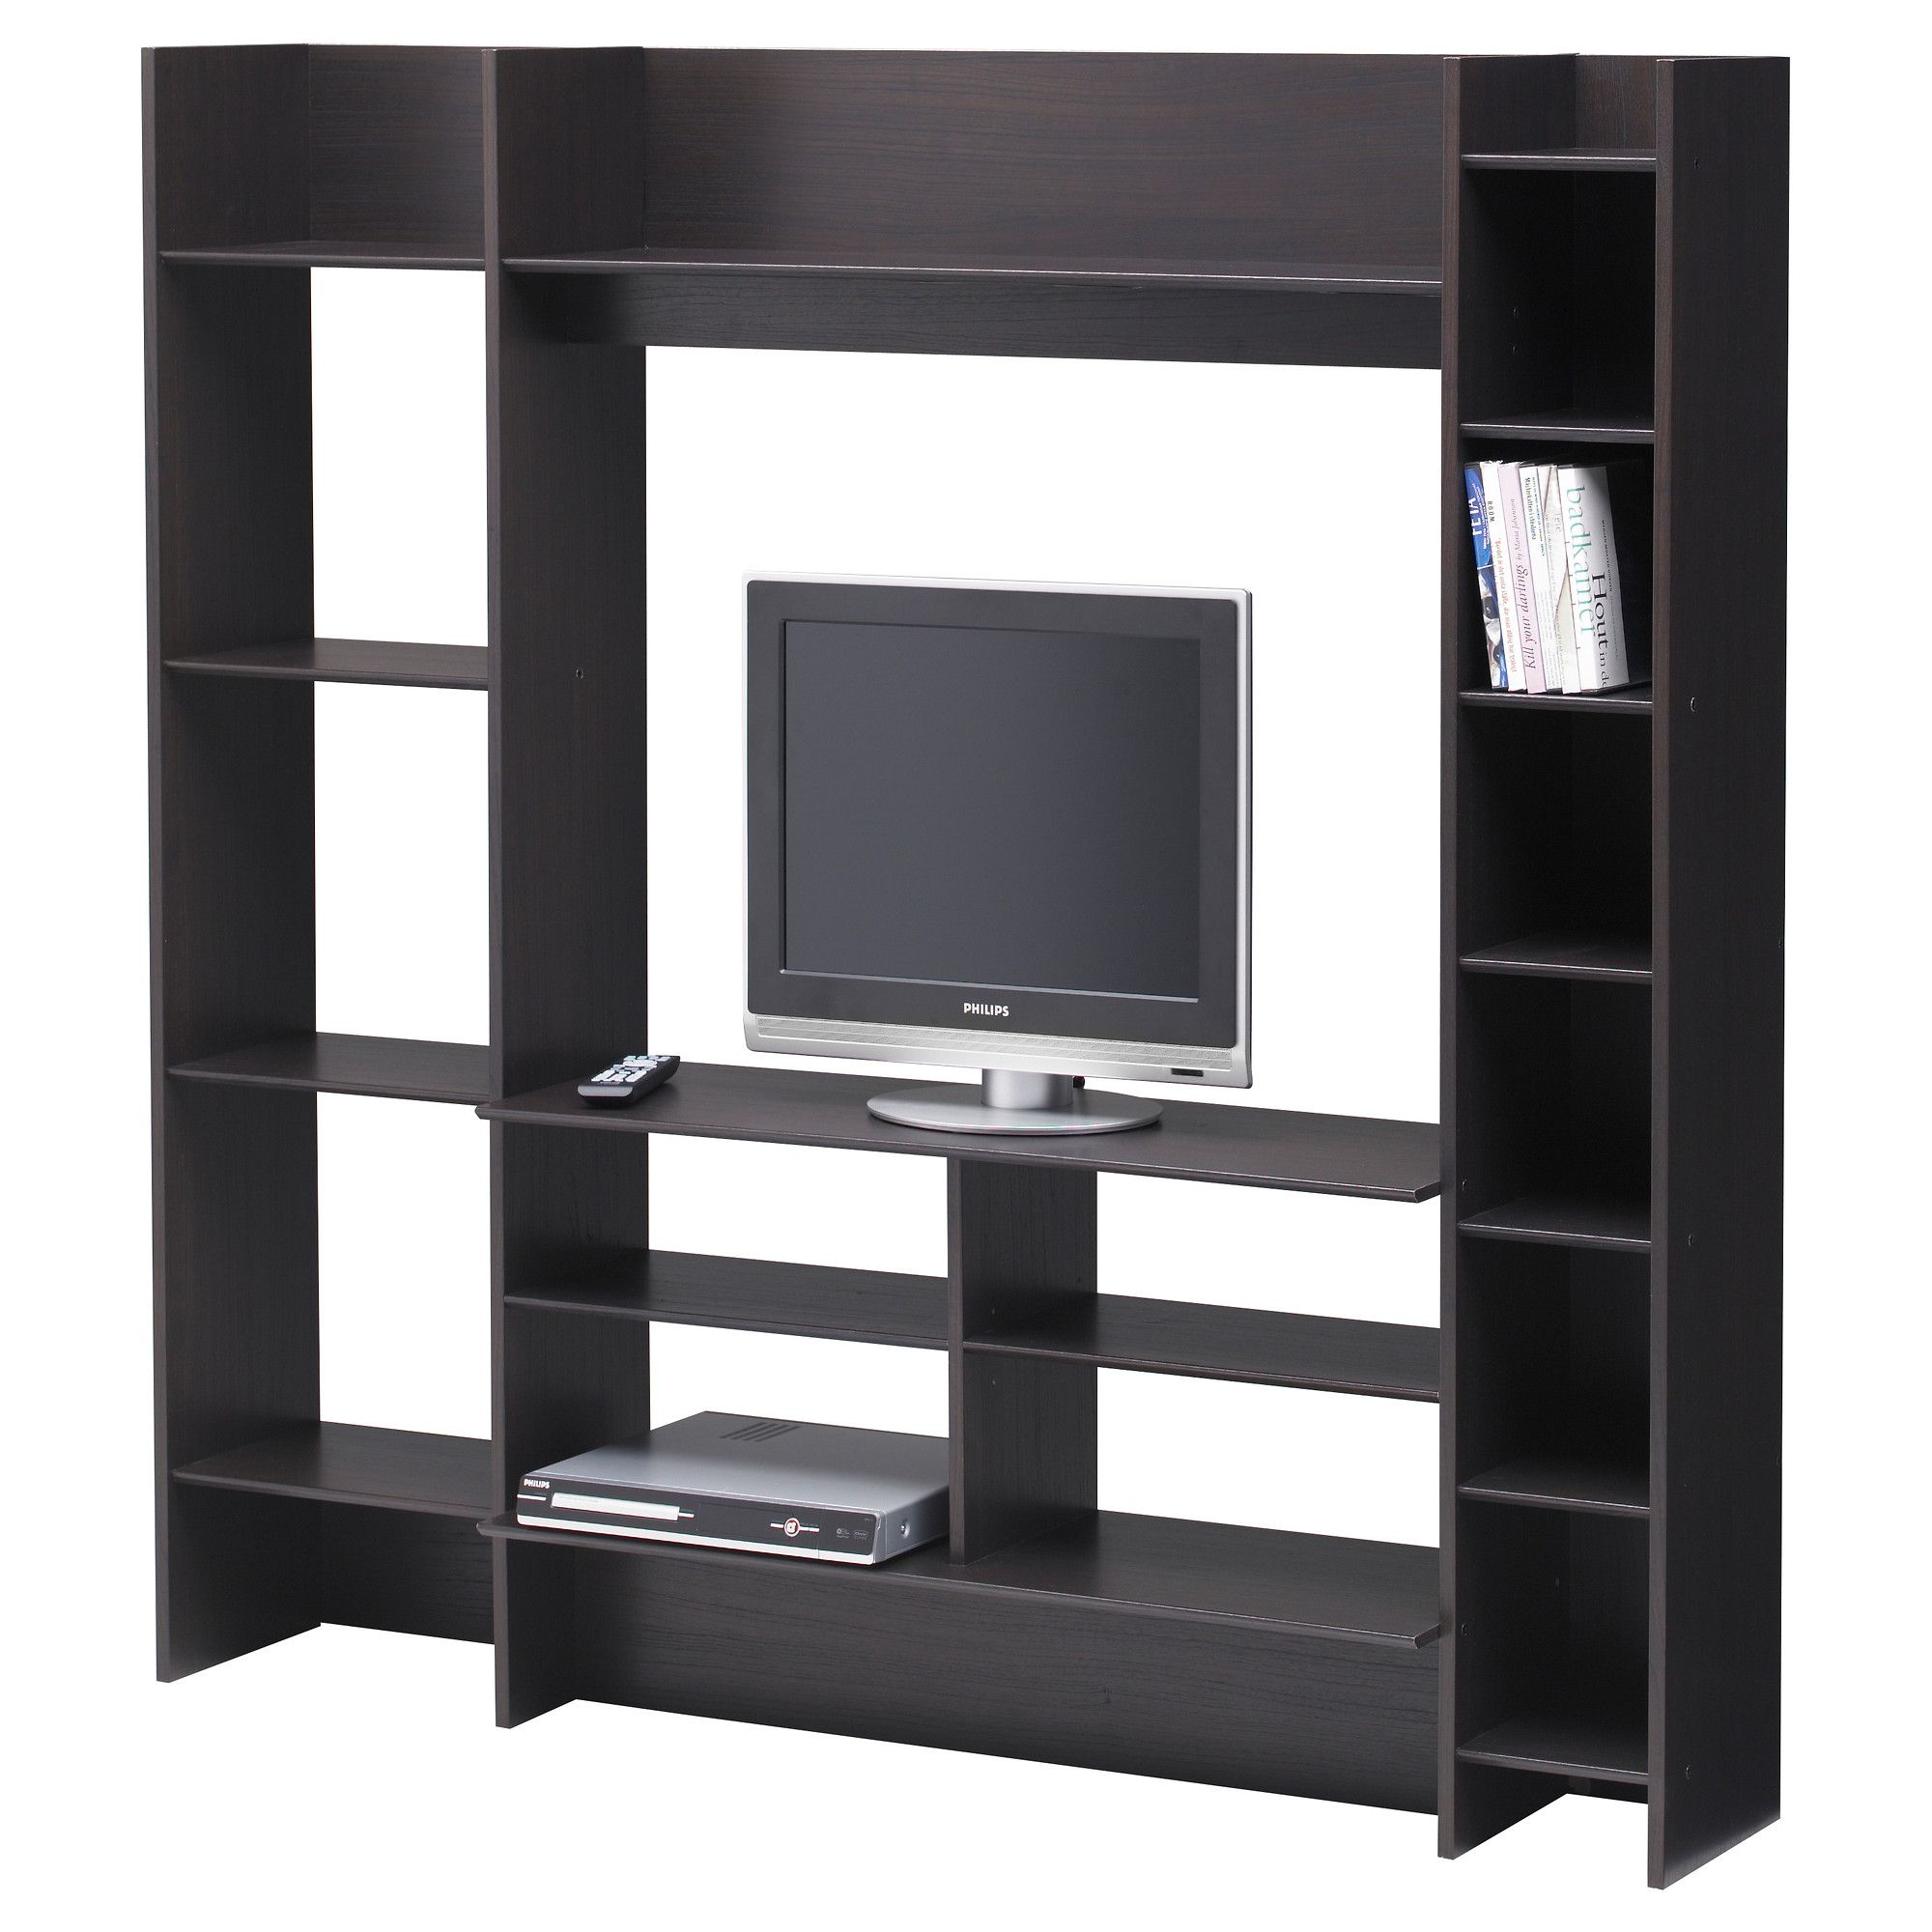 Mavas Entertainment Center Ikea 79 99 Best Bet For The Fits Perfectly My Bedroom